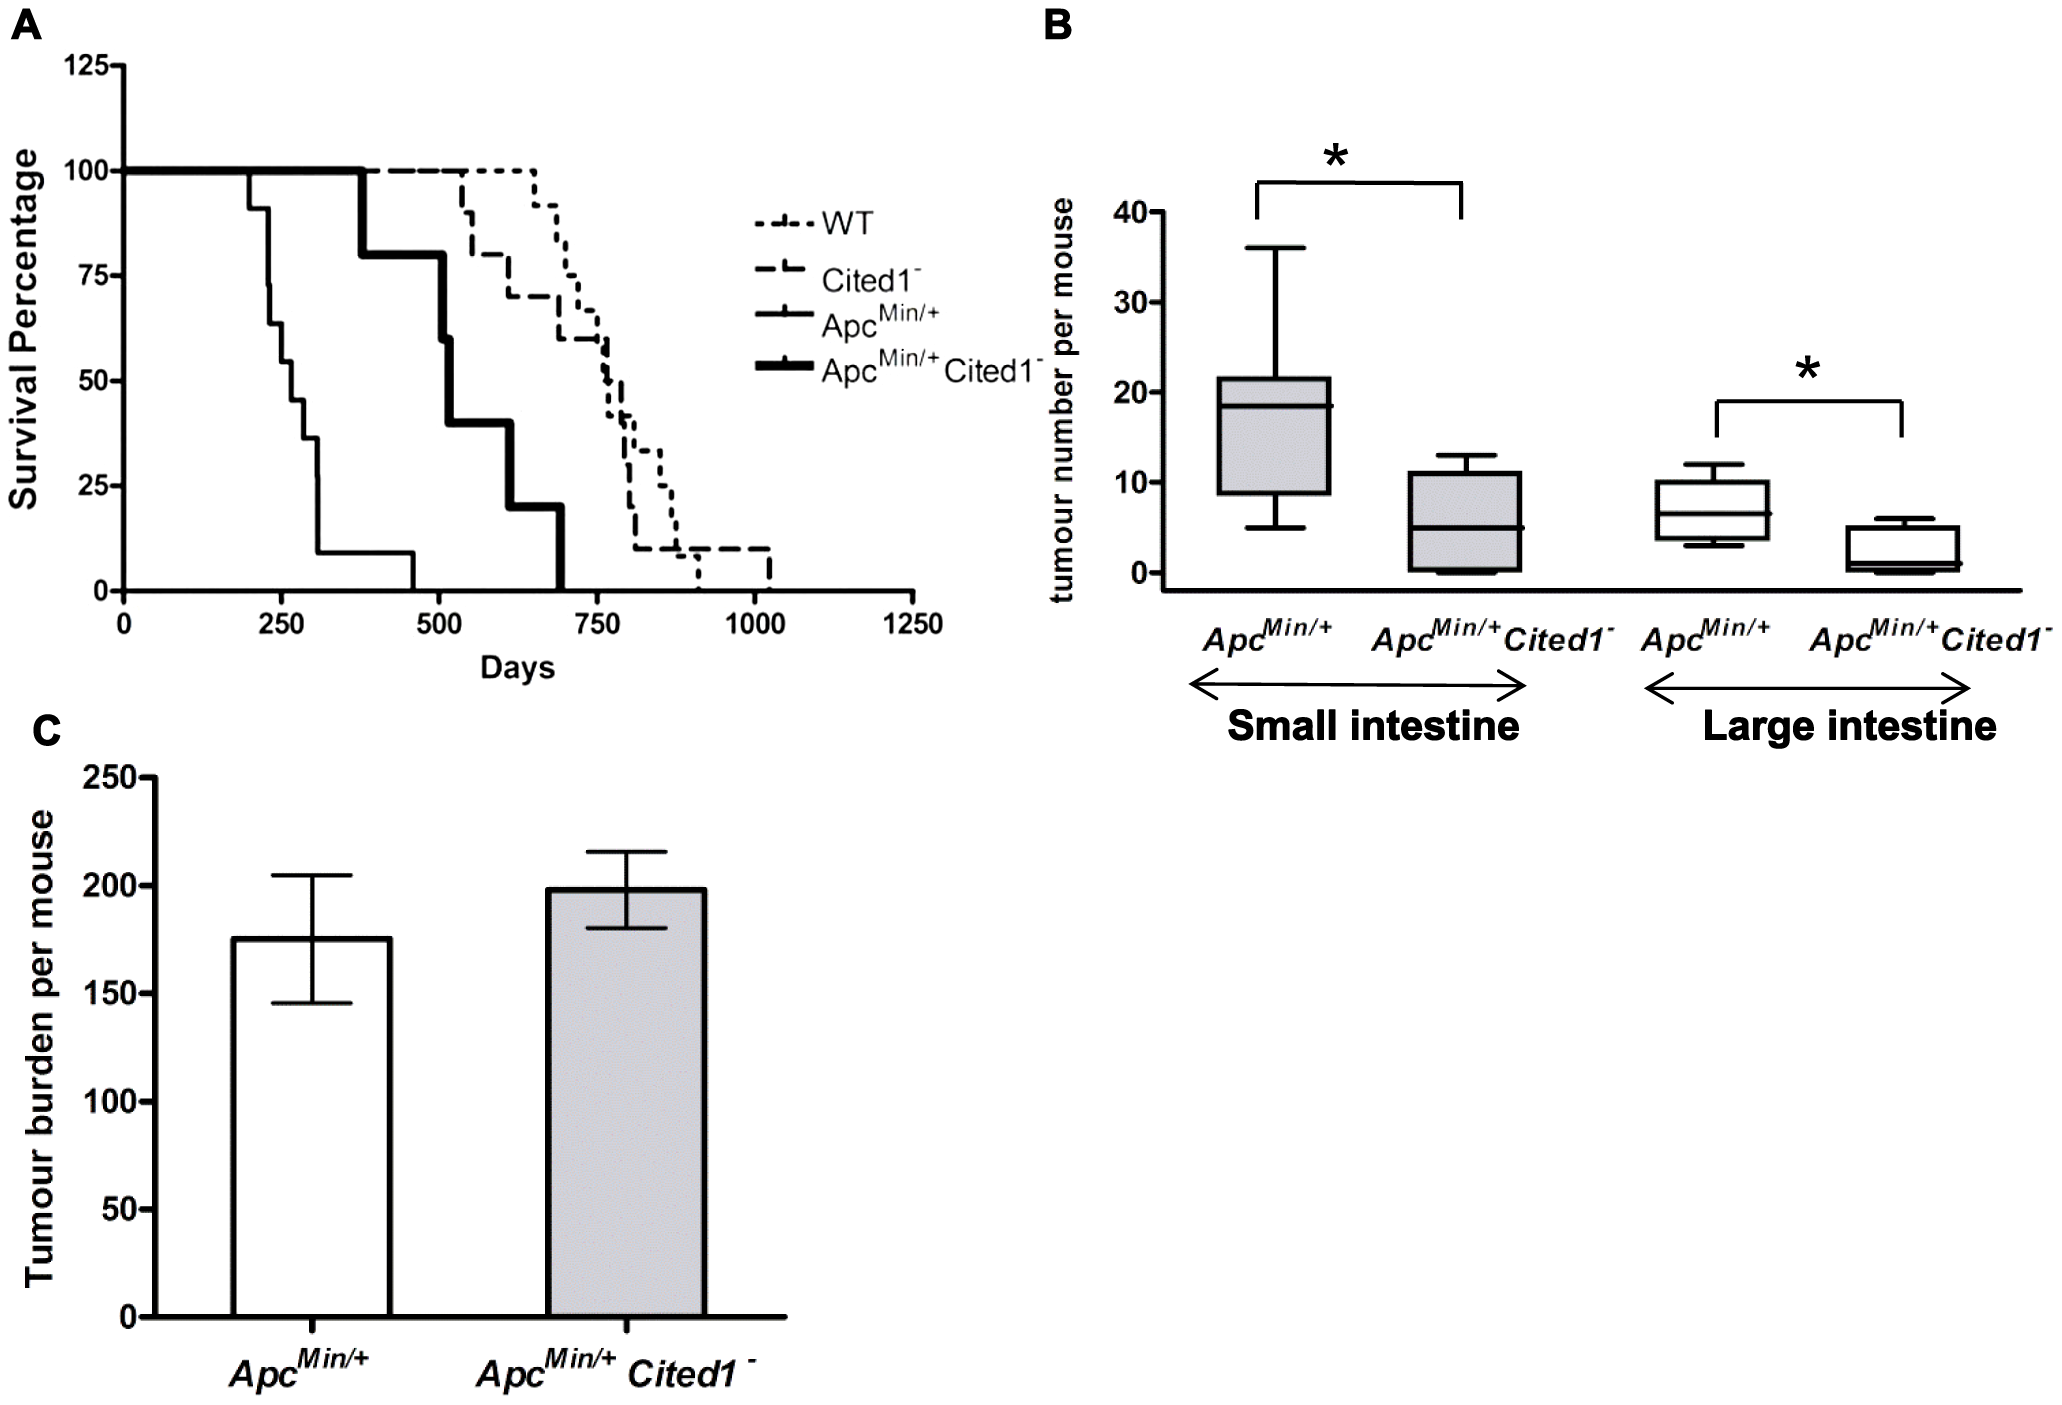 Loss of <i>Cited1</i> extends lifespan of <i>Apc<sup>Min/+</sup></i> mice and reduces the number of intestinal adenomas.